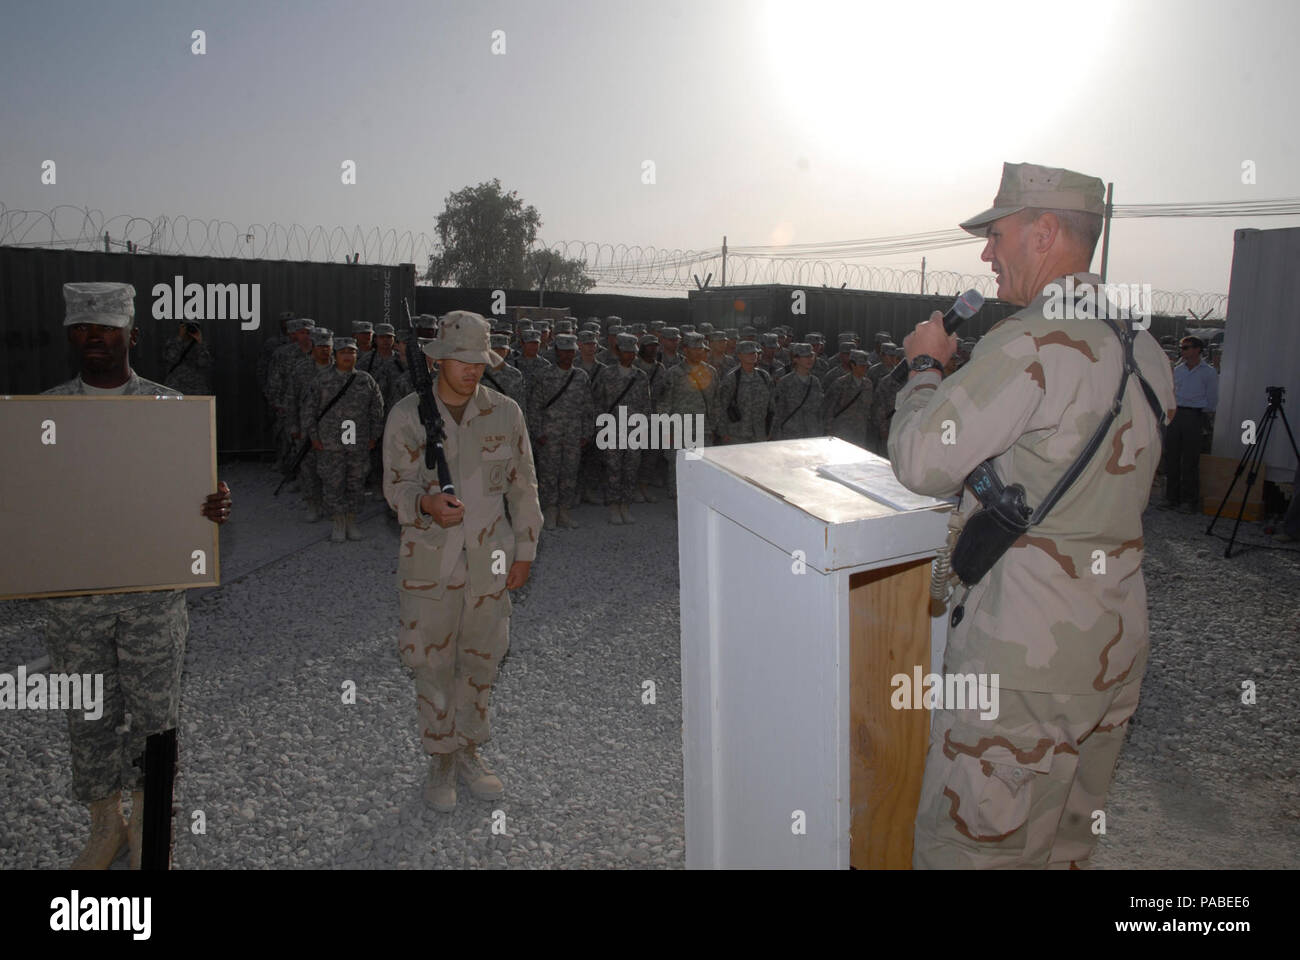 Capt. Kelly Schmader, commander of the 30th Naval Construction Regiment, delivers a message to service members during a memorial ceremony held at Kandahar Airfield. Sailors assigned to 30NCR and soldiers assigned to the 143D Expeditionary Sustainment Command, take time to honor those who lost their lives on Sept 11, 2001, and to pay tribute to the servicemen and women that have paid the ultimate sacrifice in support of Operations Iraqi Freedom and Enduring Freedom. 30NCR, homeported in Port Hueneme, Calif., and the 143d ESC, based in Orlando, Fla., are deployed to Afghanistan in support of Ope - Stock Image